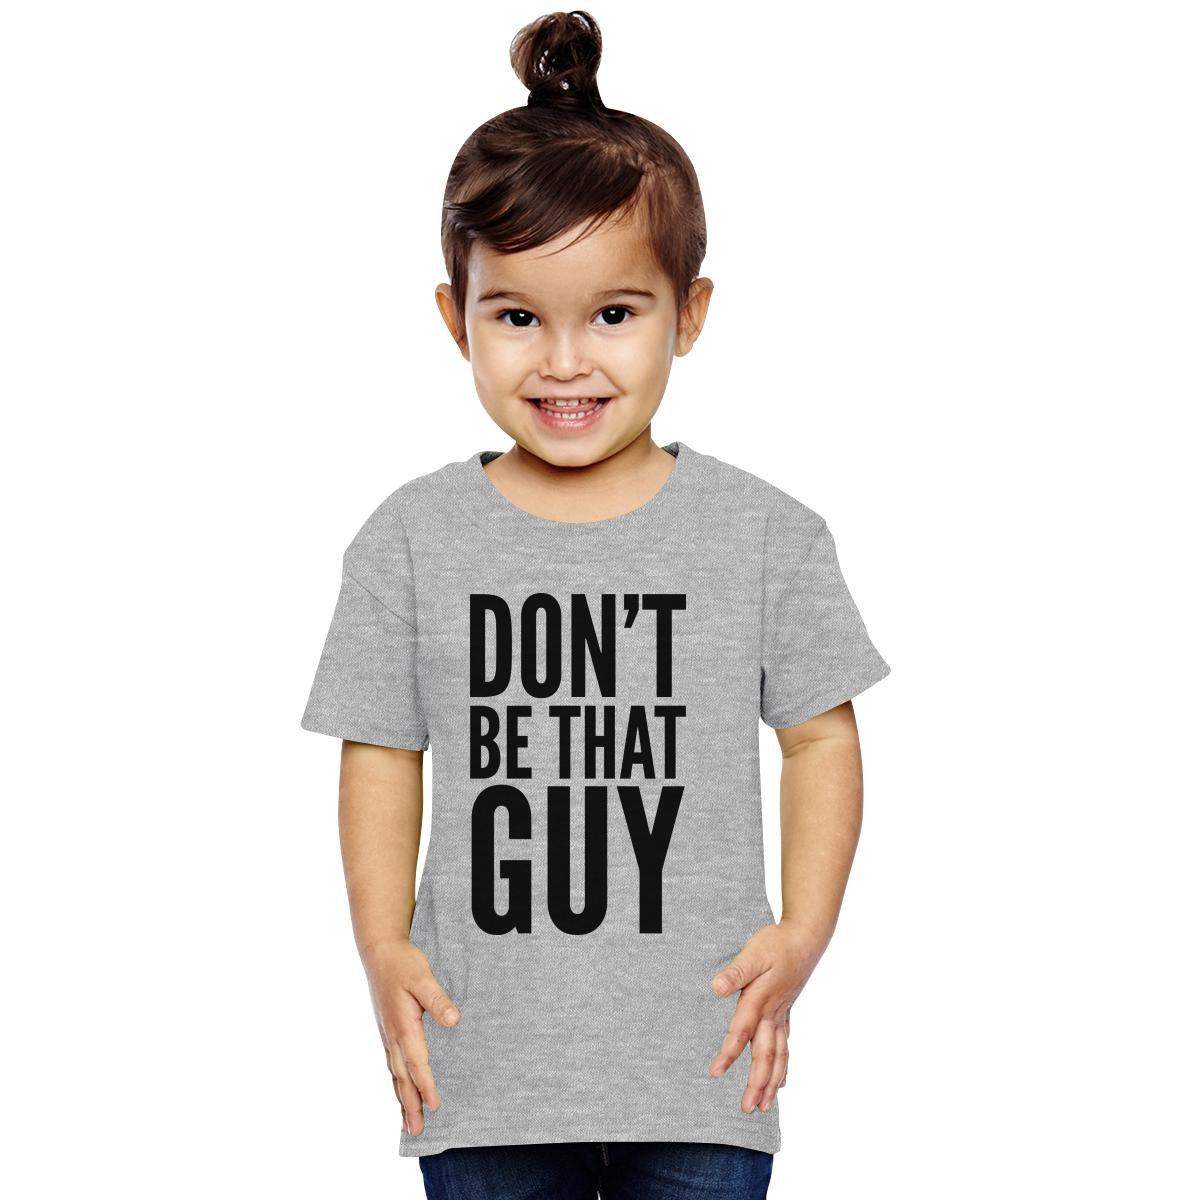 a4c128688539f Don t be that guy Toddler T-shirt